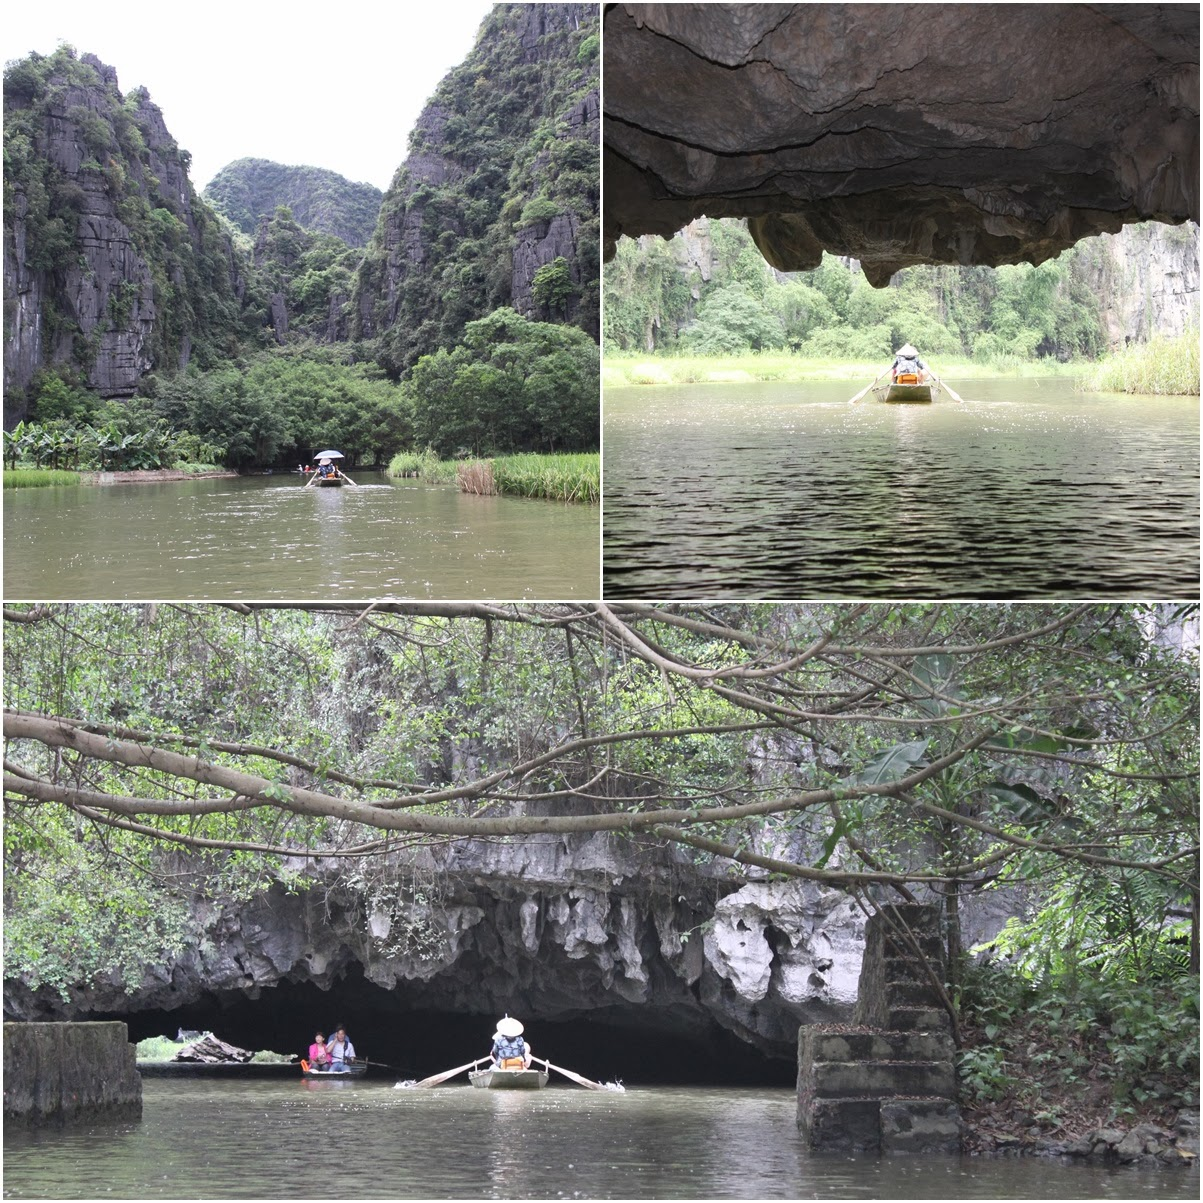 Heading into the tiny entrance of second cave, Hang Giua cave to see the unique rock formation at Tam Coc near the city of Ninh Bình in northern Vietnam